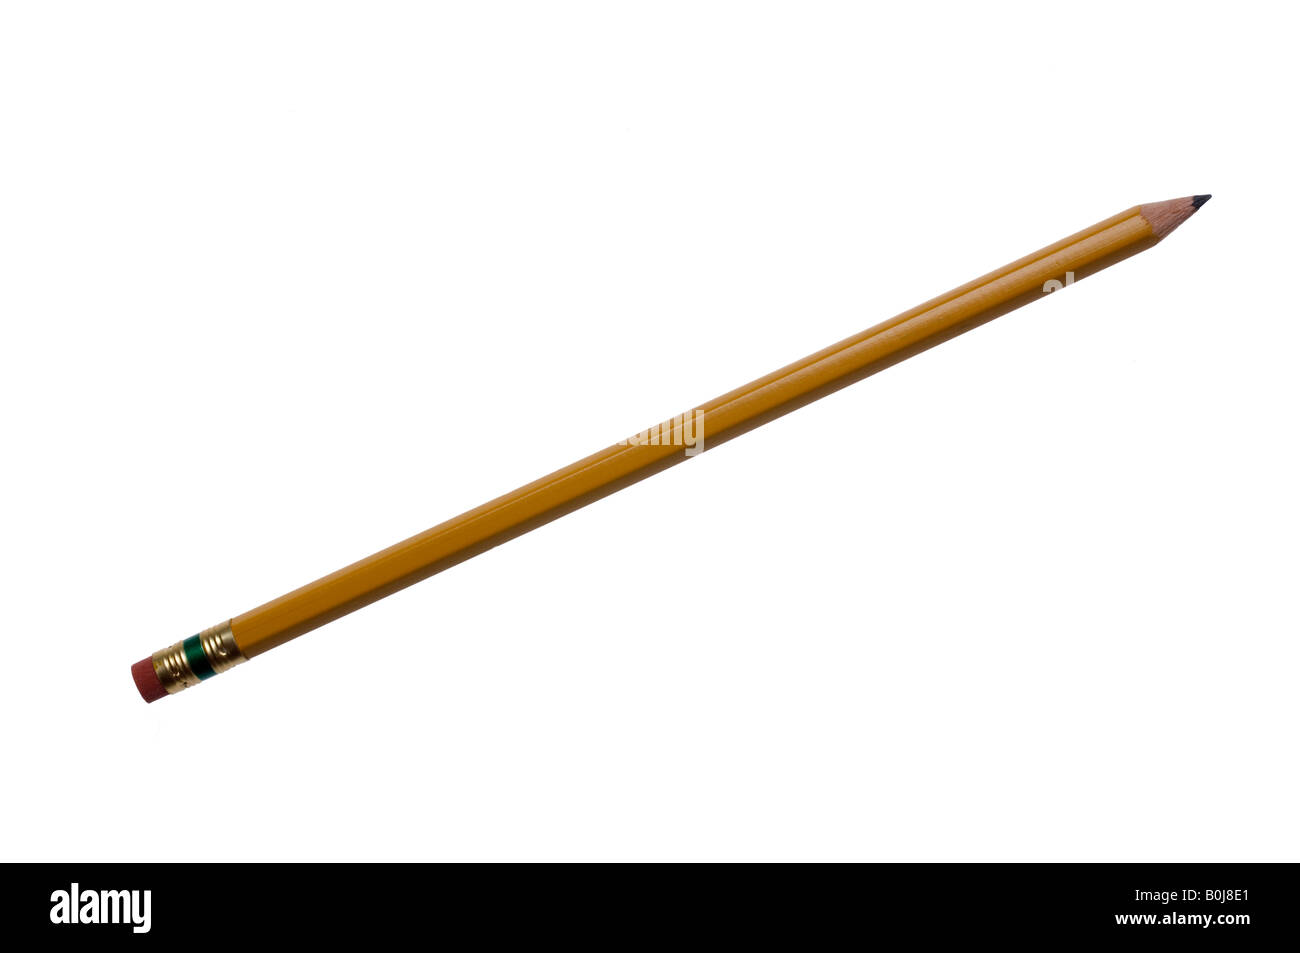 Cutout of pencil, full length view. - Stock Image